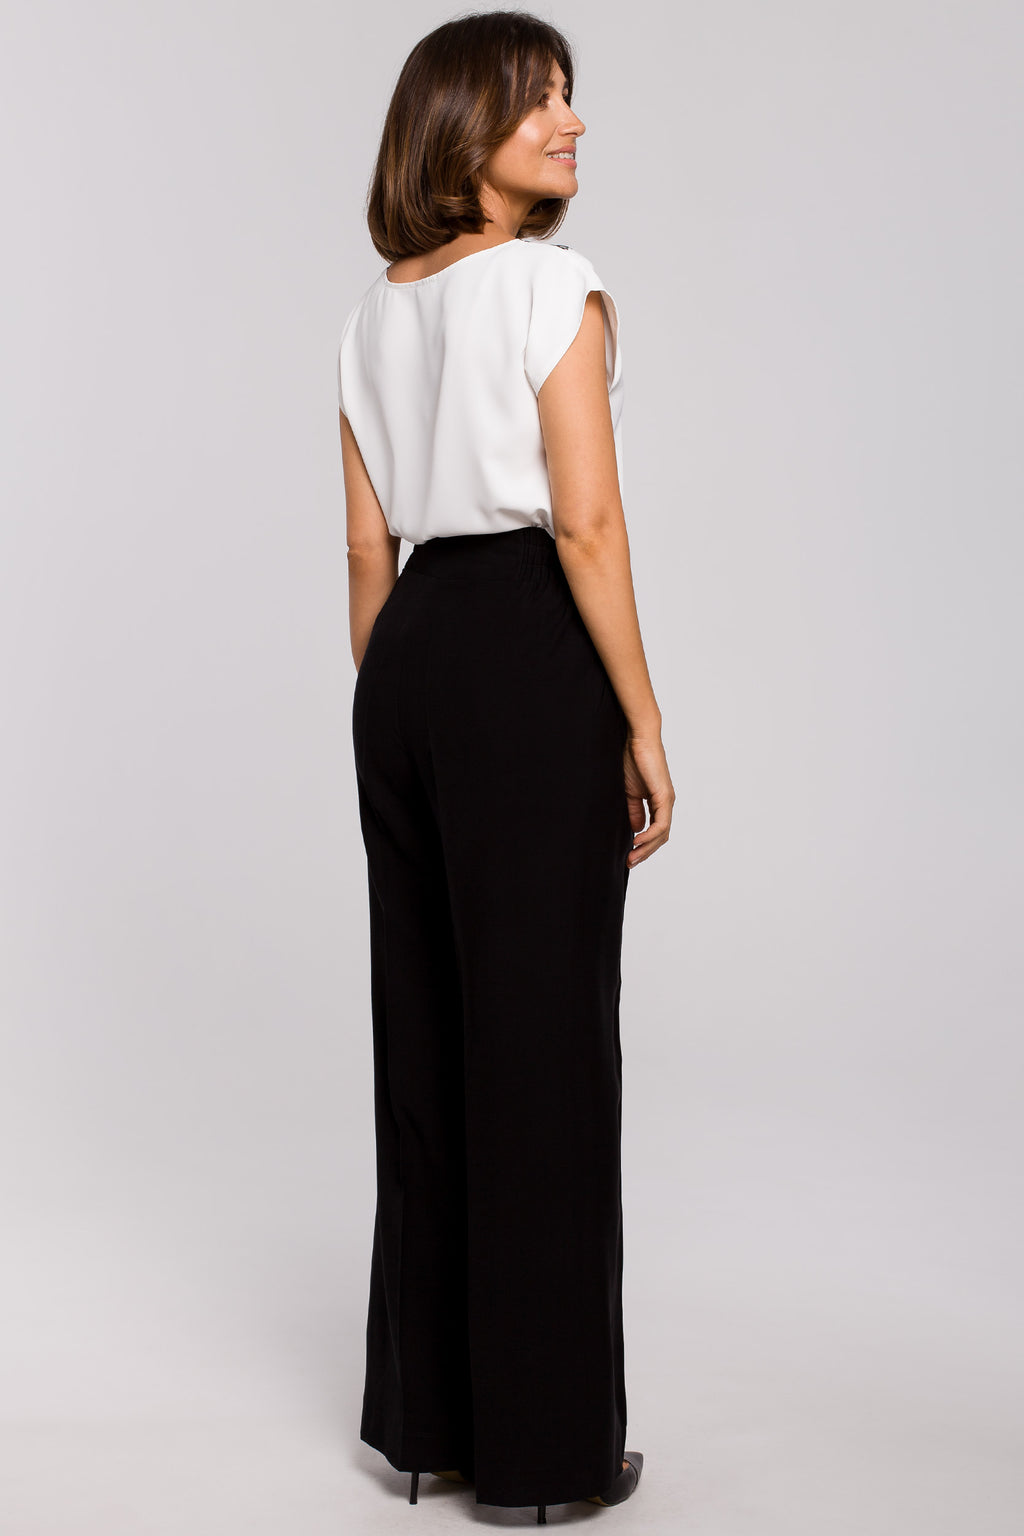 Black Palazzo Trousers With Elastic Waist - So Chic Boutique